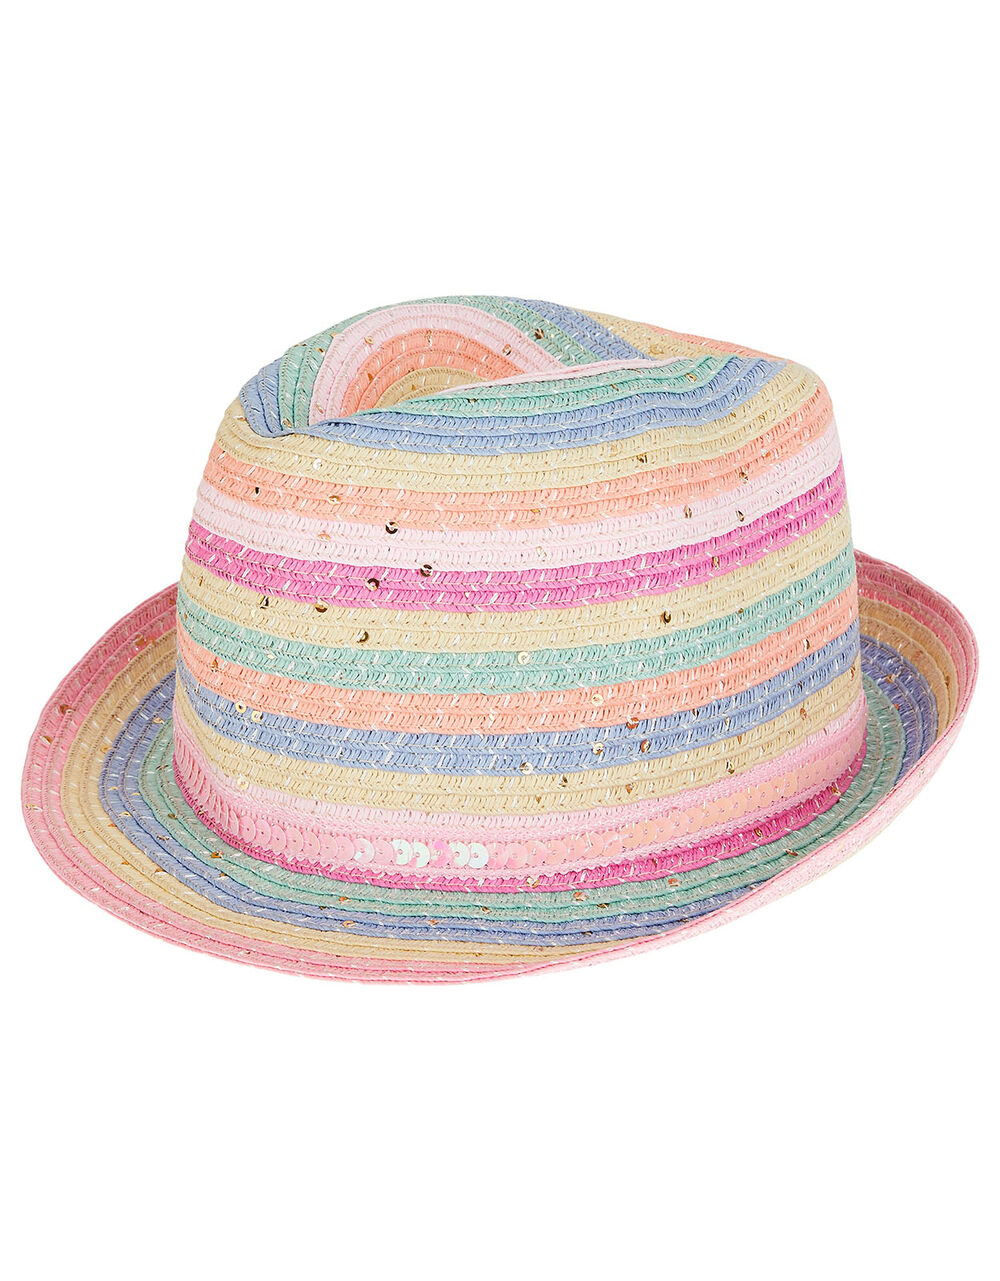 Rainbow Sequin Trilby Hat, Multi (MULTI), large